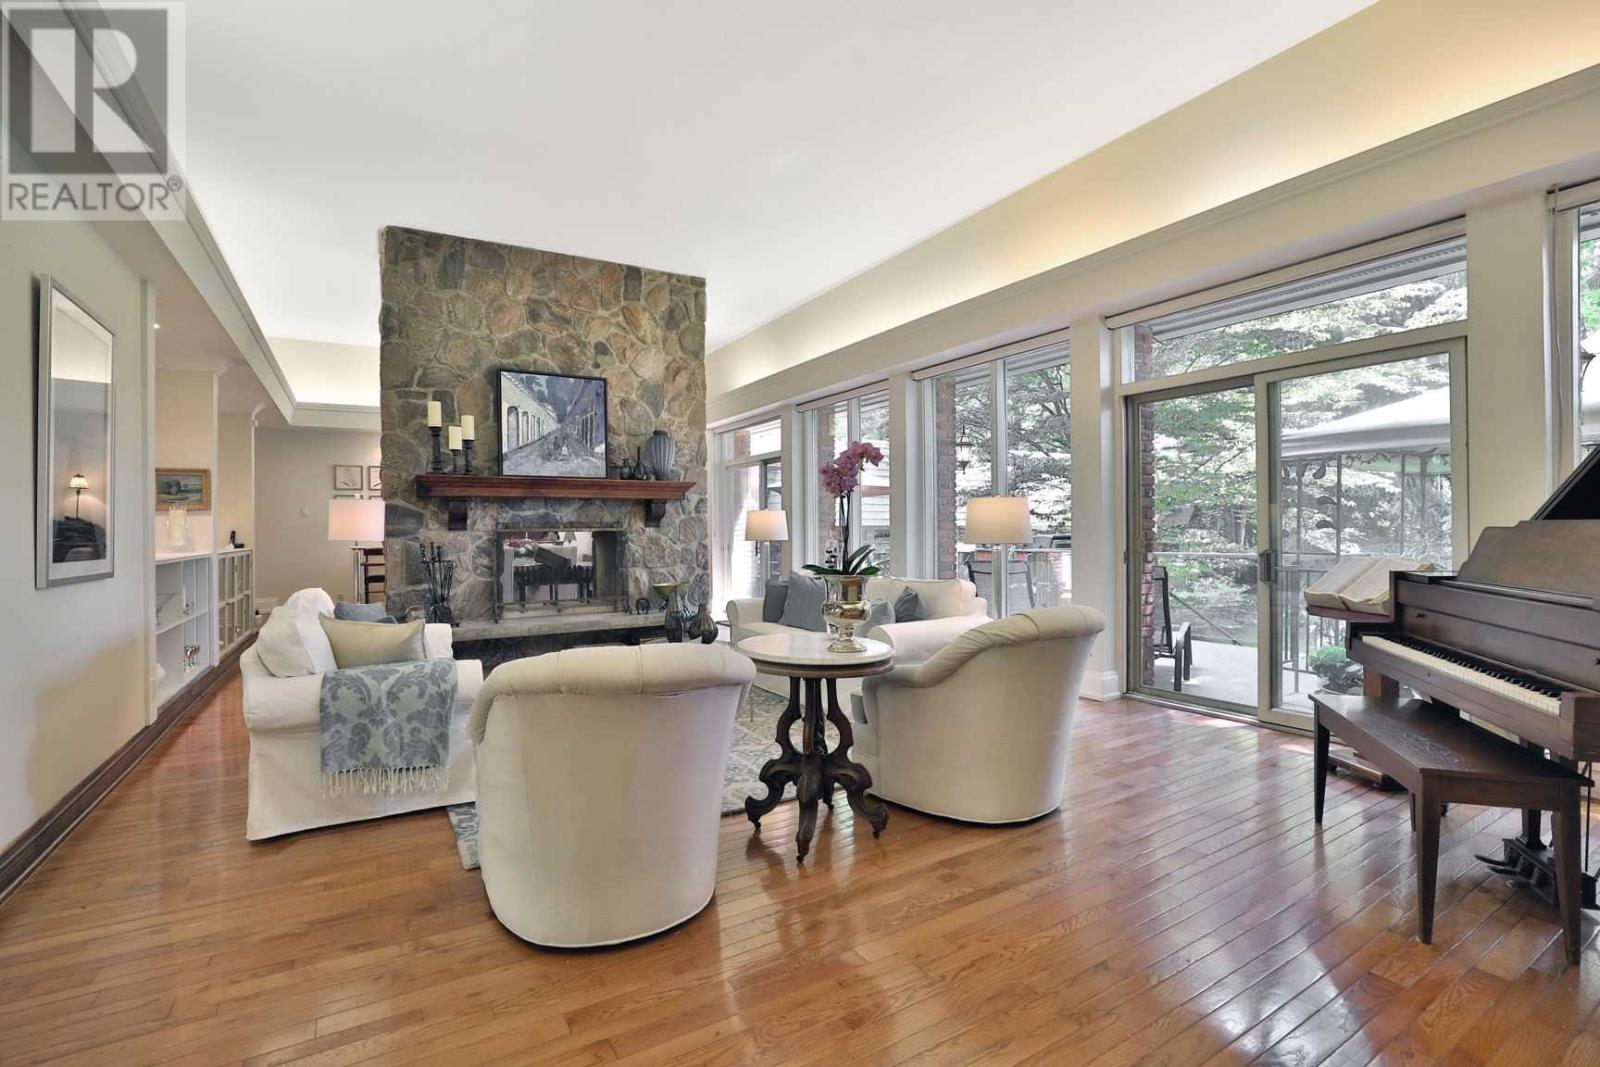 306 Lakeshore Rd W, Oakville, Ontario  L6K 1G1 - Photo 5 - W4635405